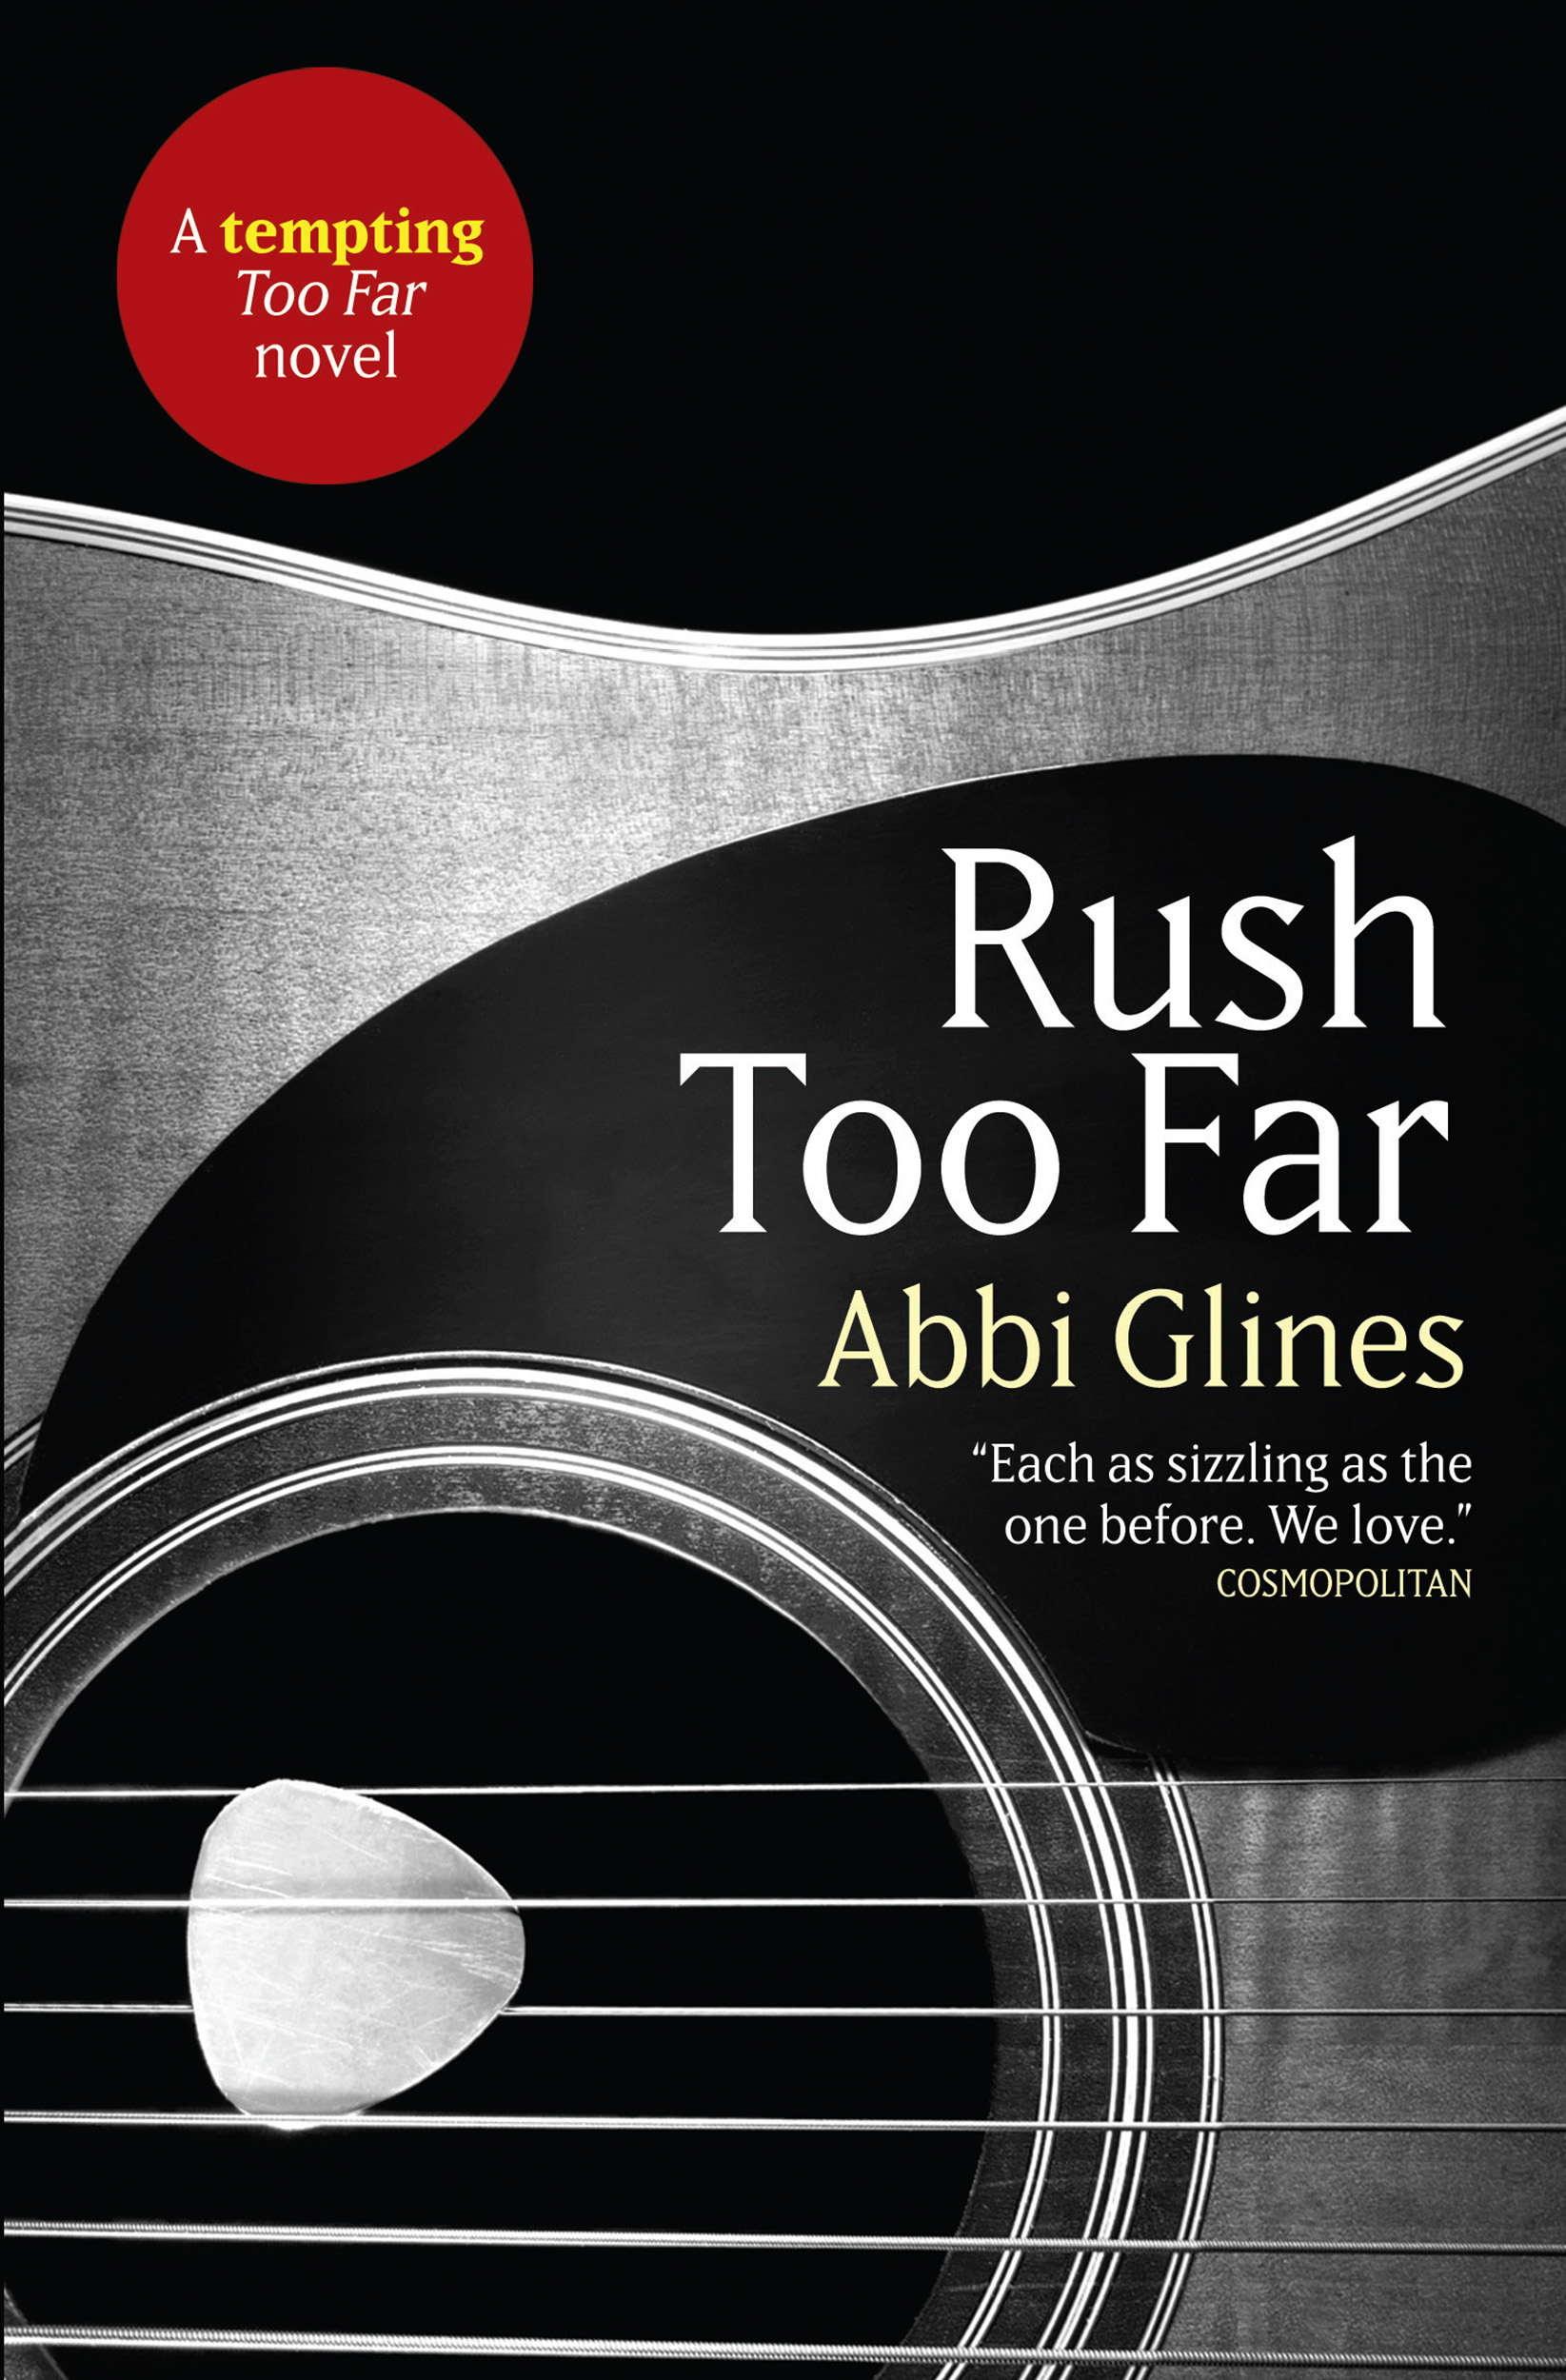 Rush too far book by abbi glines official publisher page simon book cover image jpg rush too far fandeluxe Choice Image